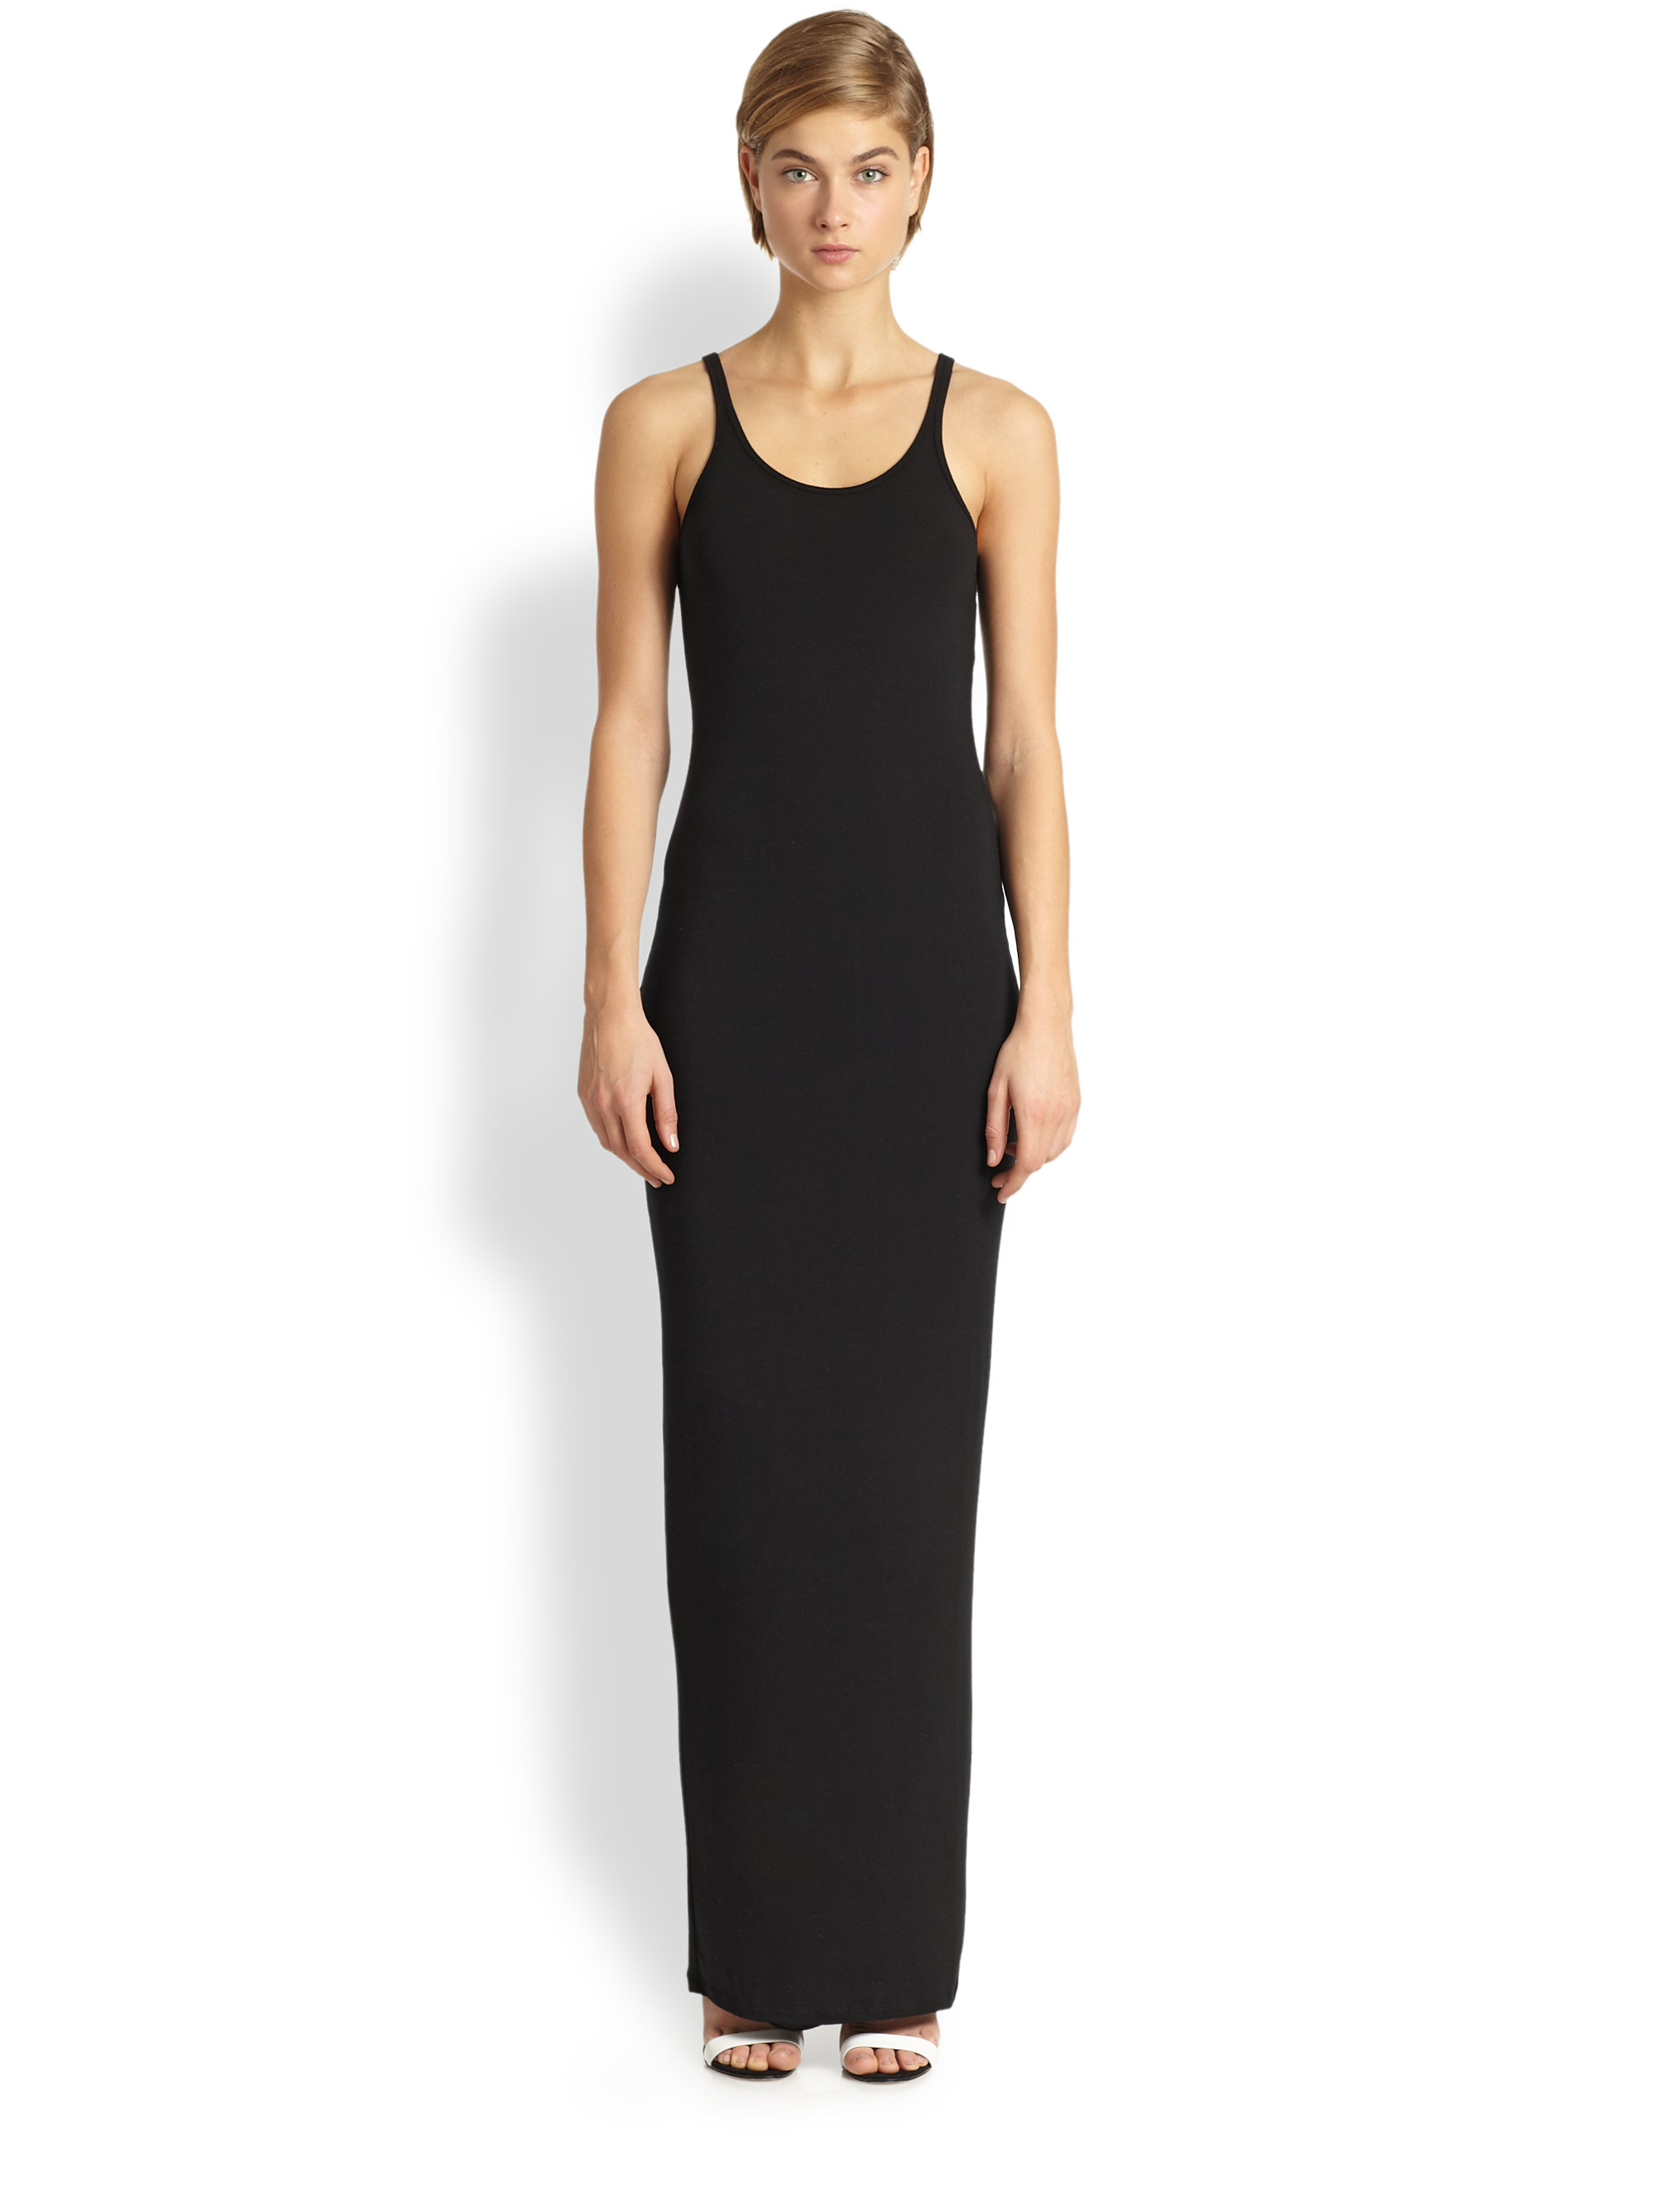 T by alexander wang Stretch Jersey Maxi Dress in Black - Lyst